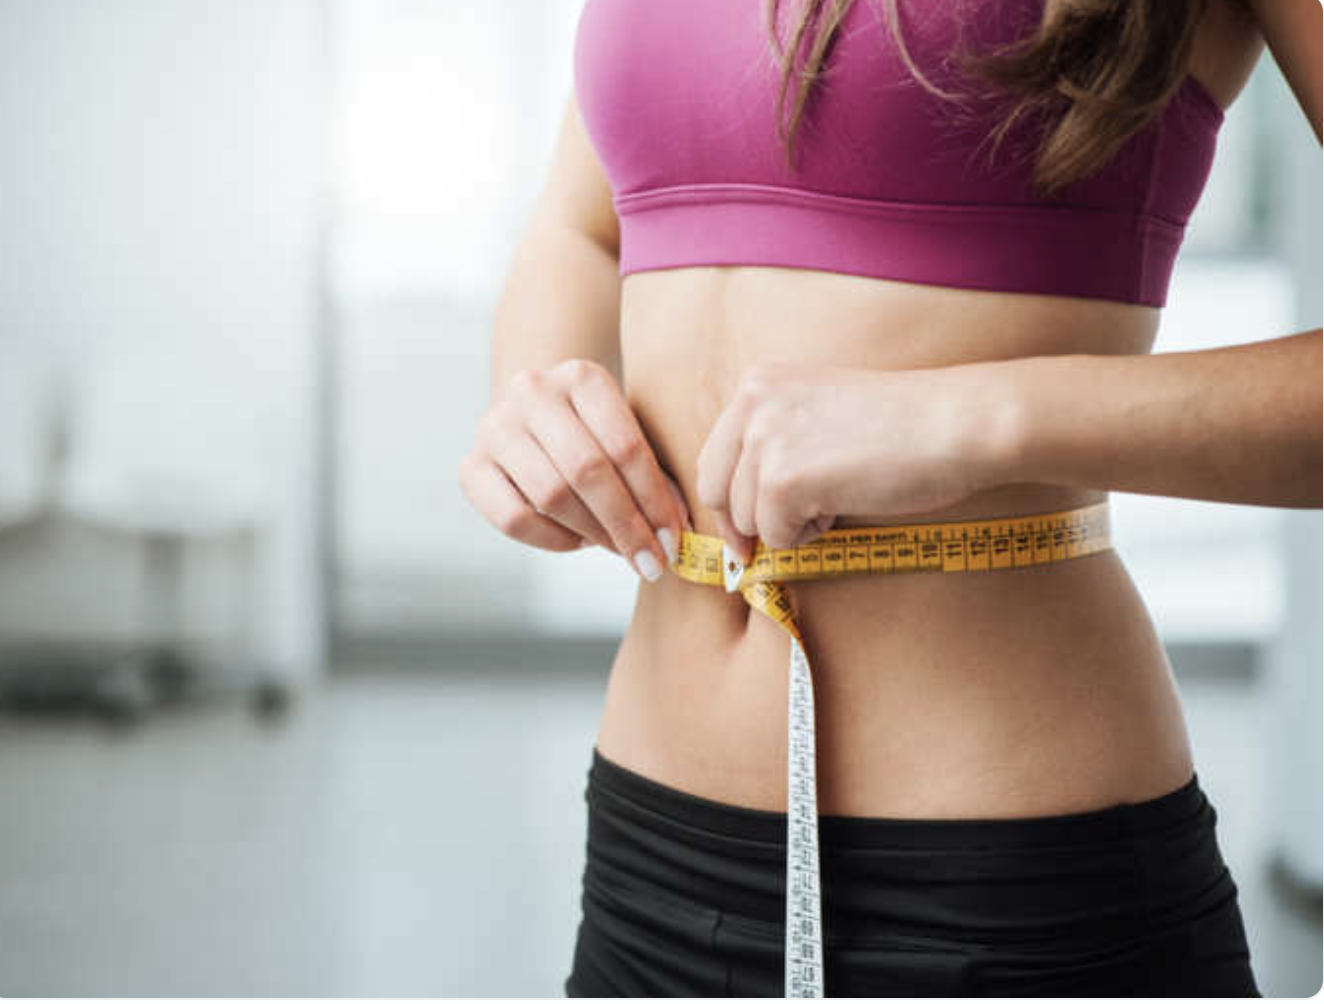 Weight loss: Is it healthy to lose weight fast?